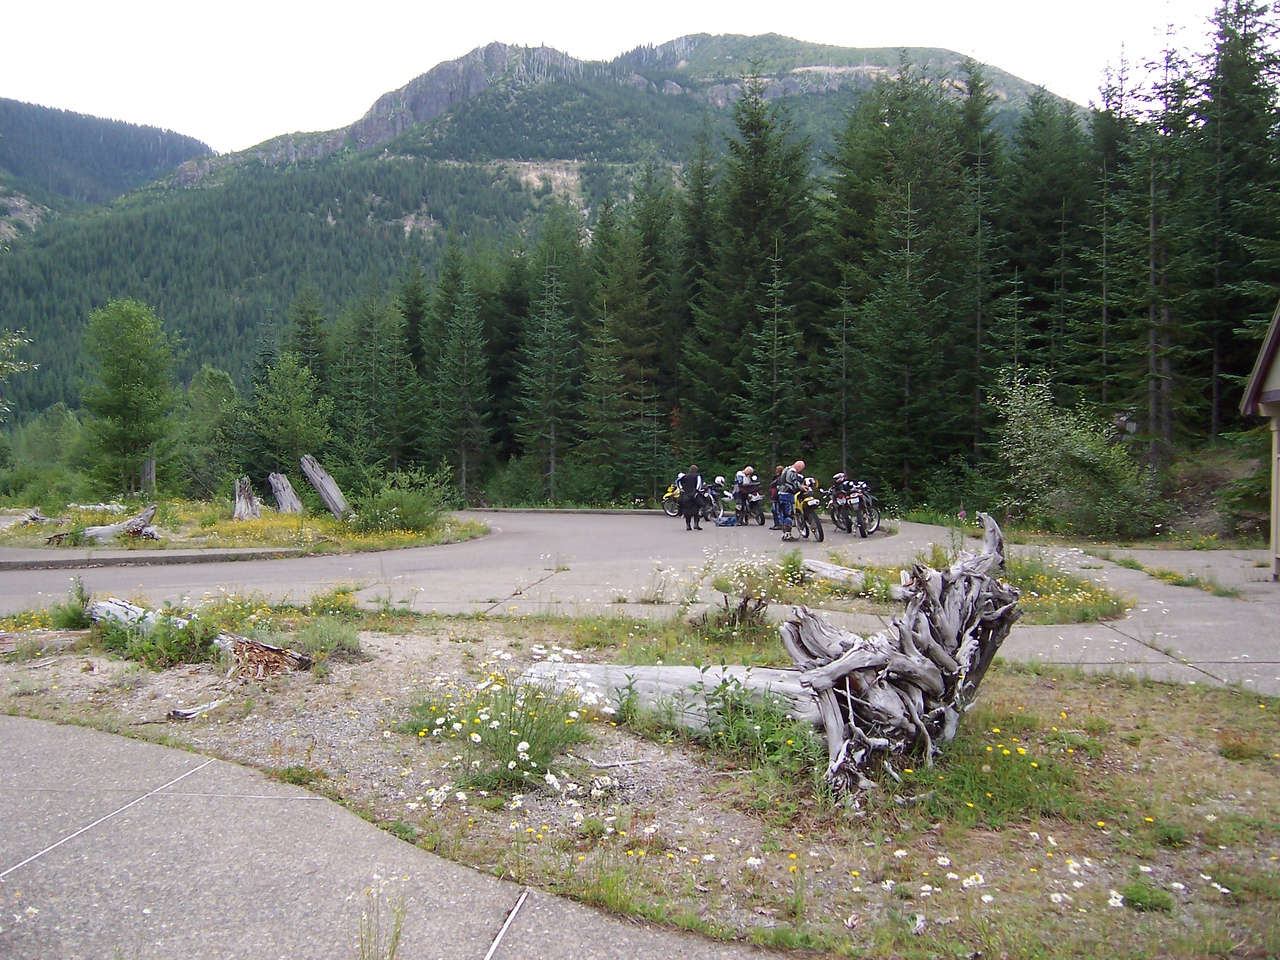 We decide to checkout the 26 road into Mt. St. Helens Monument.